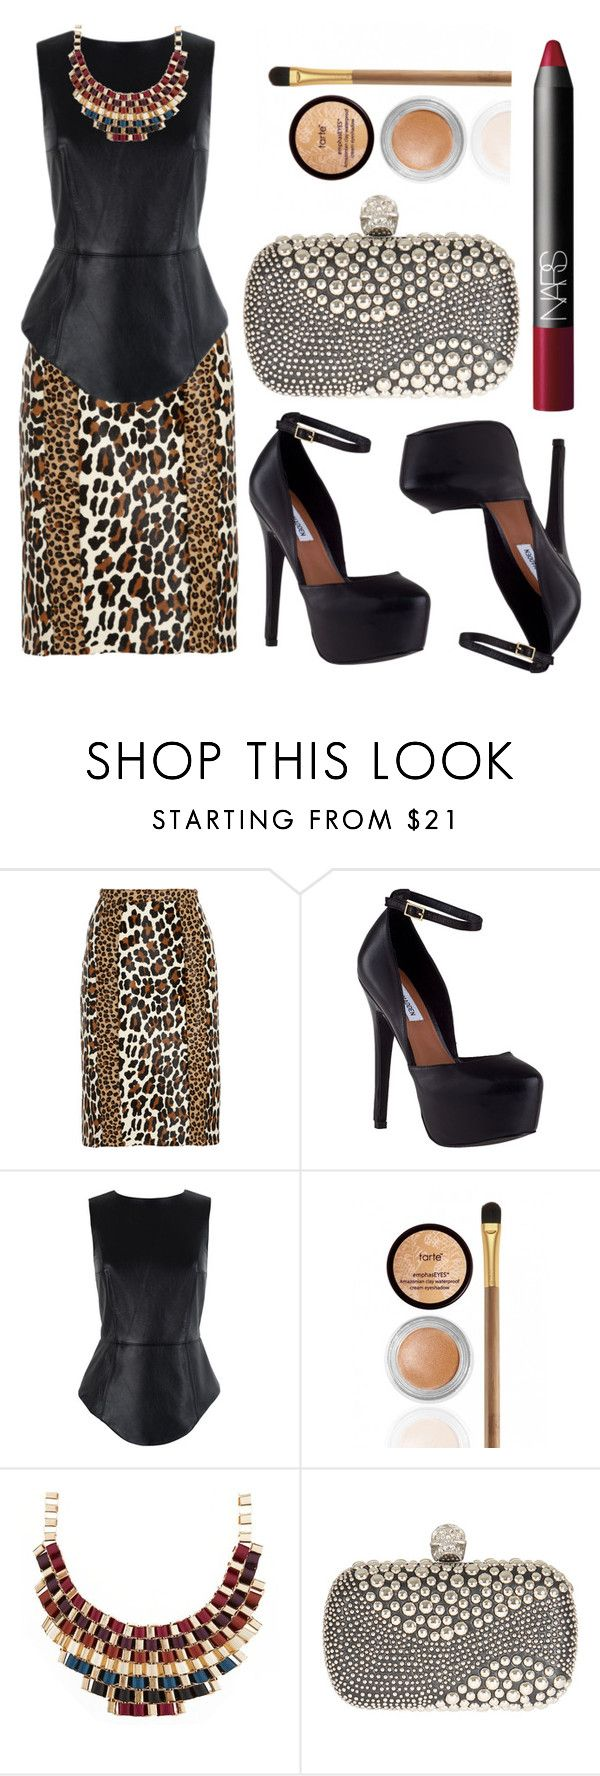 """""""Animal Prince"""" by rock-with-me ❤ liked on Polyvore featuring Burberry, Steve Madden, TIBI, tarte, Alexander McQueen, NARS Cosmetics, SimpleOutfits and rocker"""